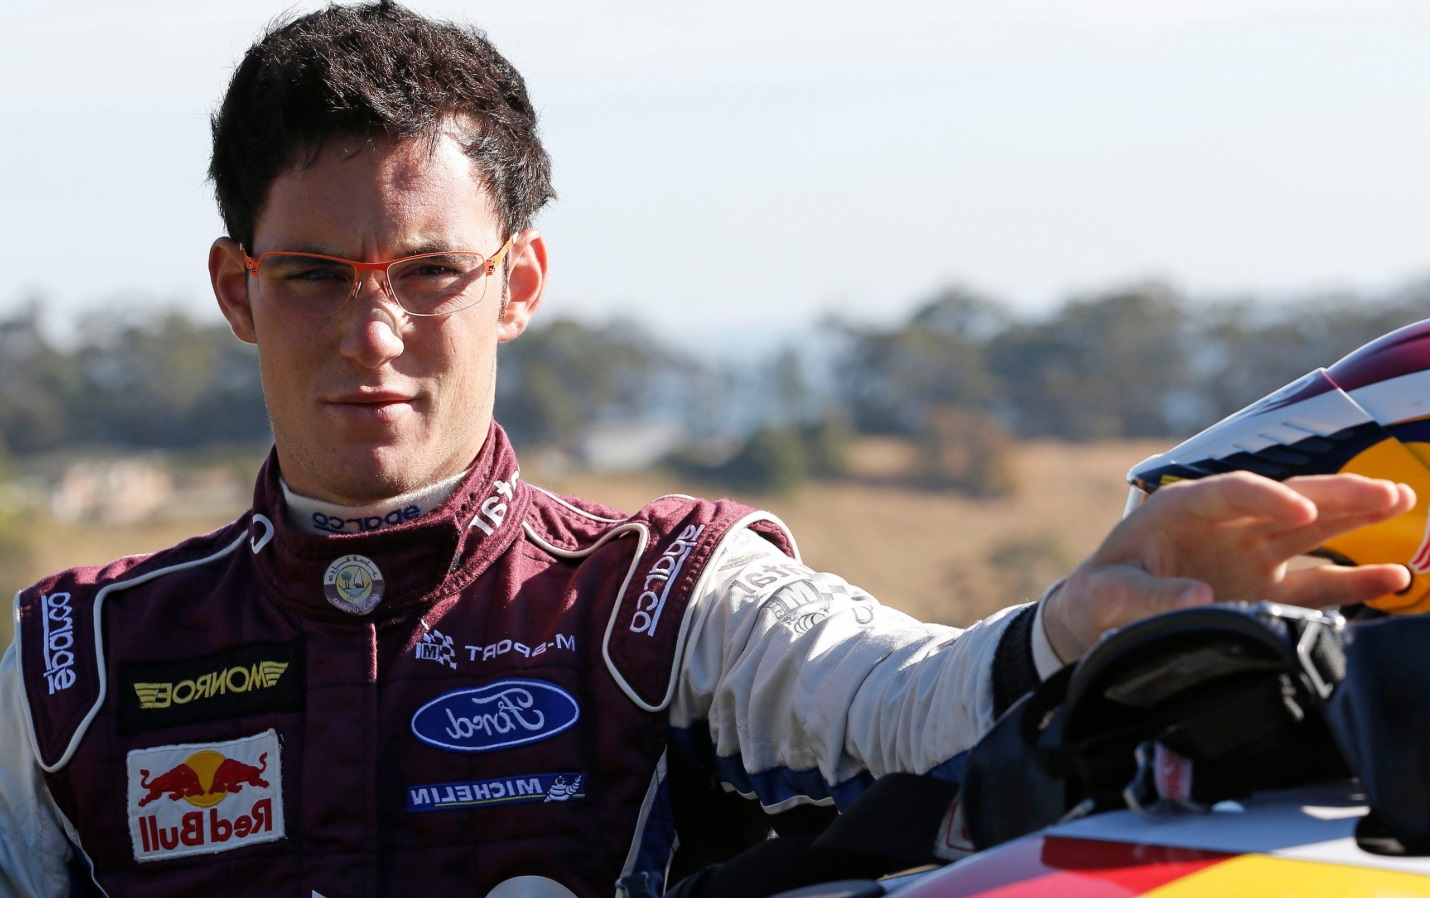 Thierry Neuville 2020 Contract